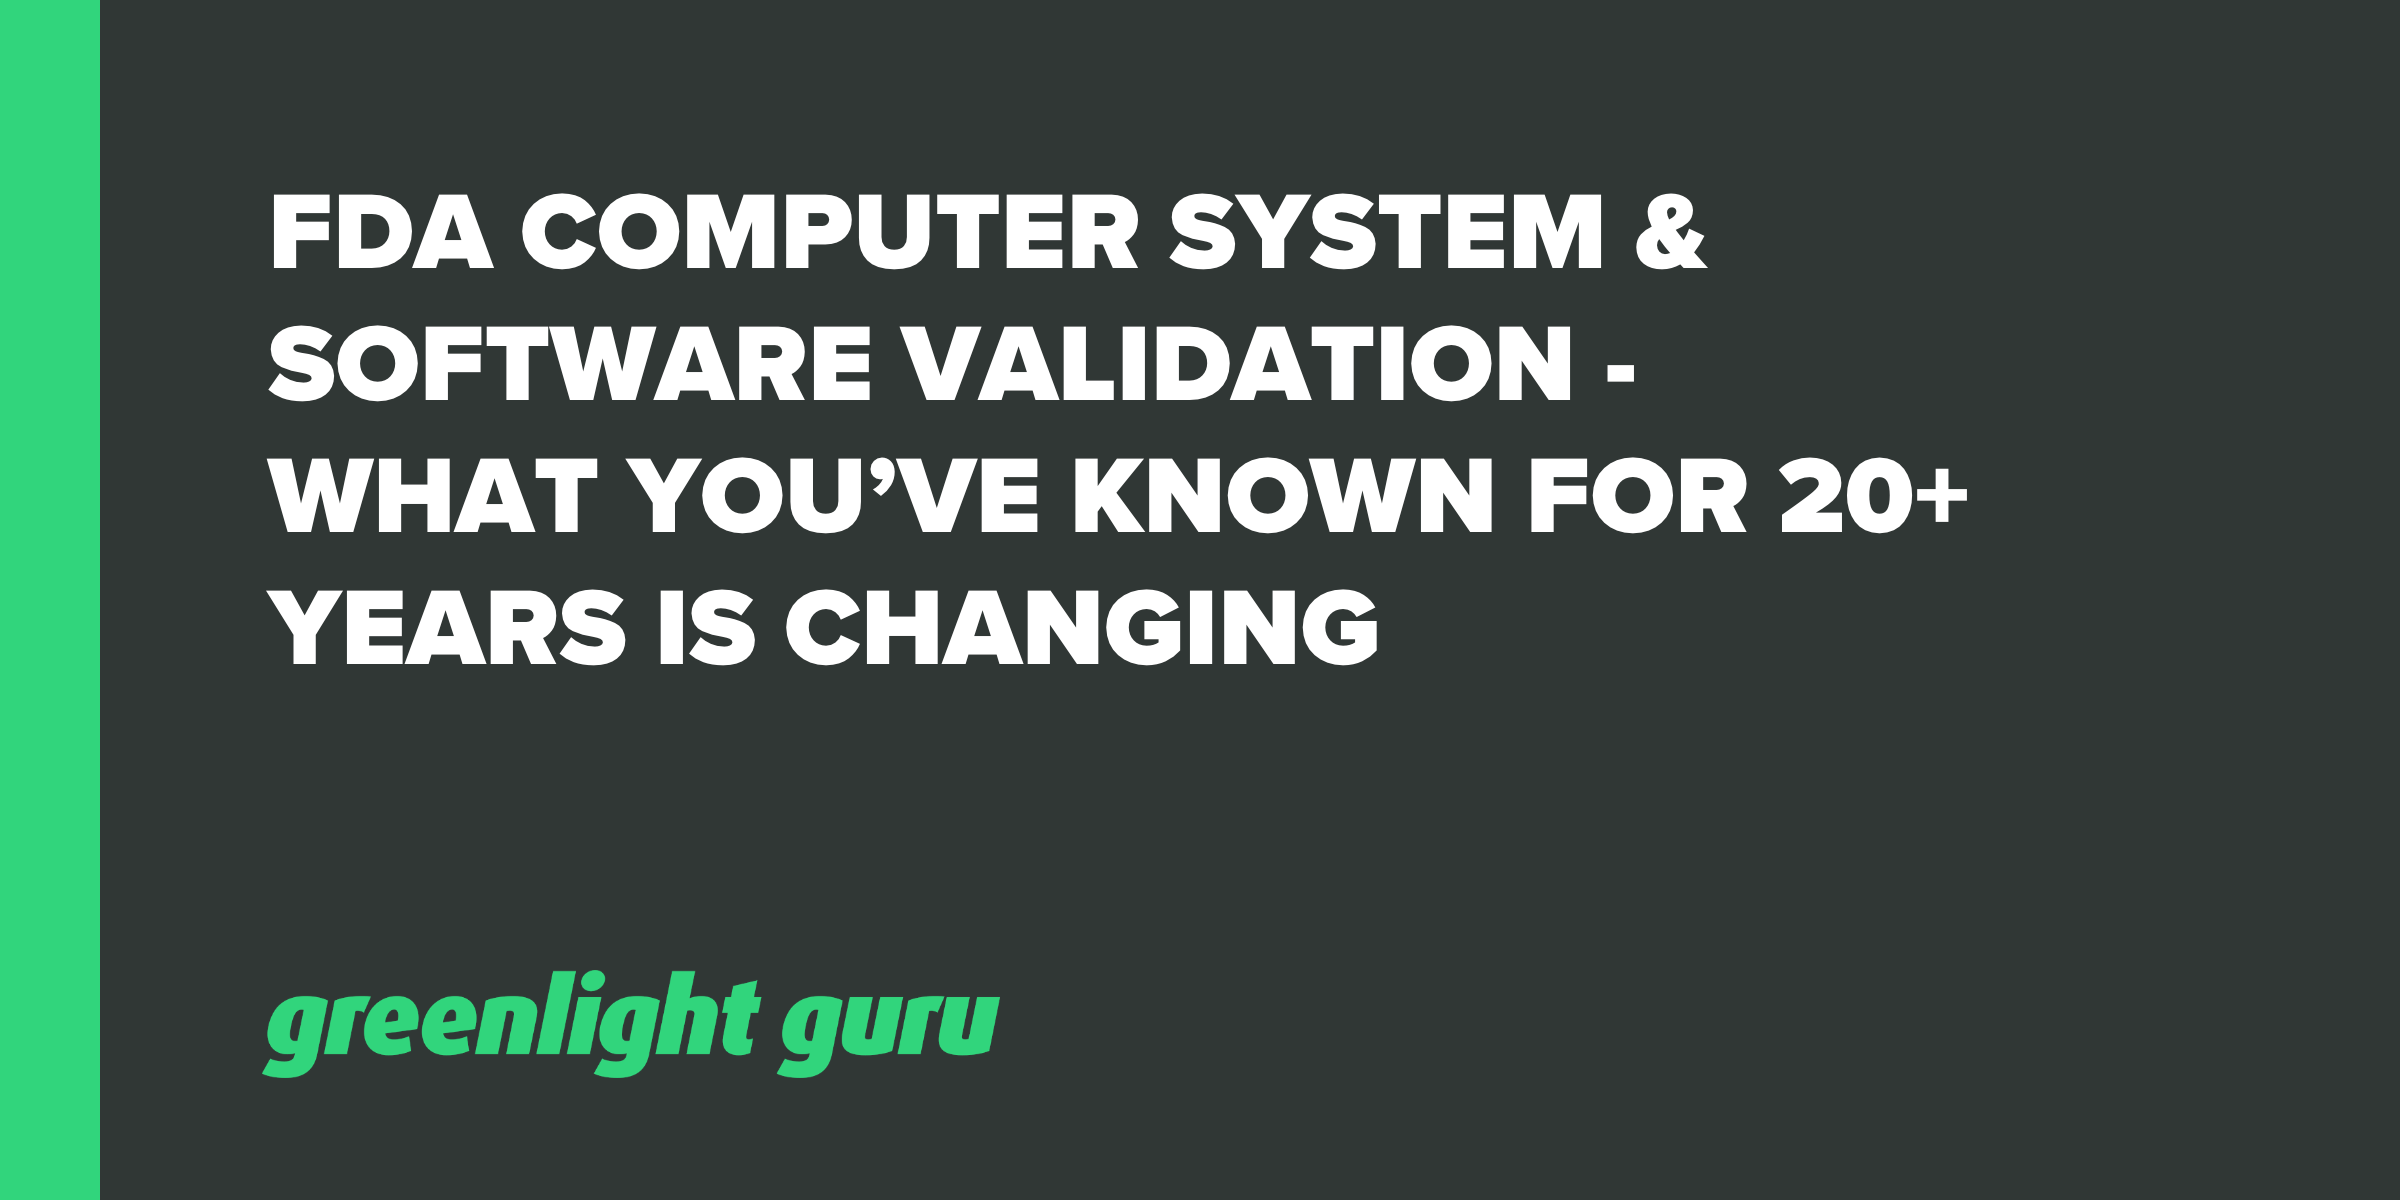 FDA Computer System & Software Validation - What You've Known For 20+ Years Is Changing